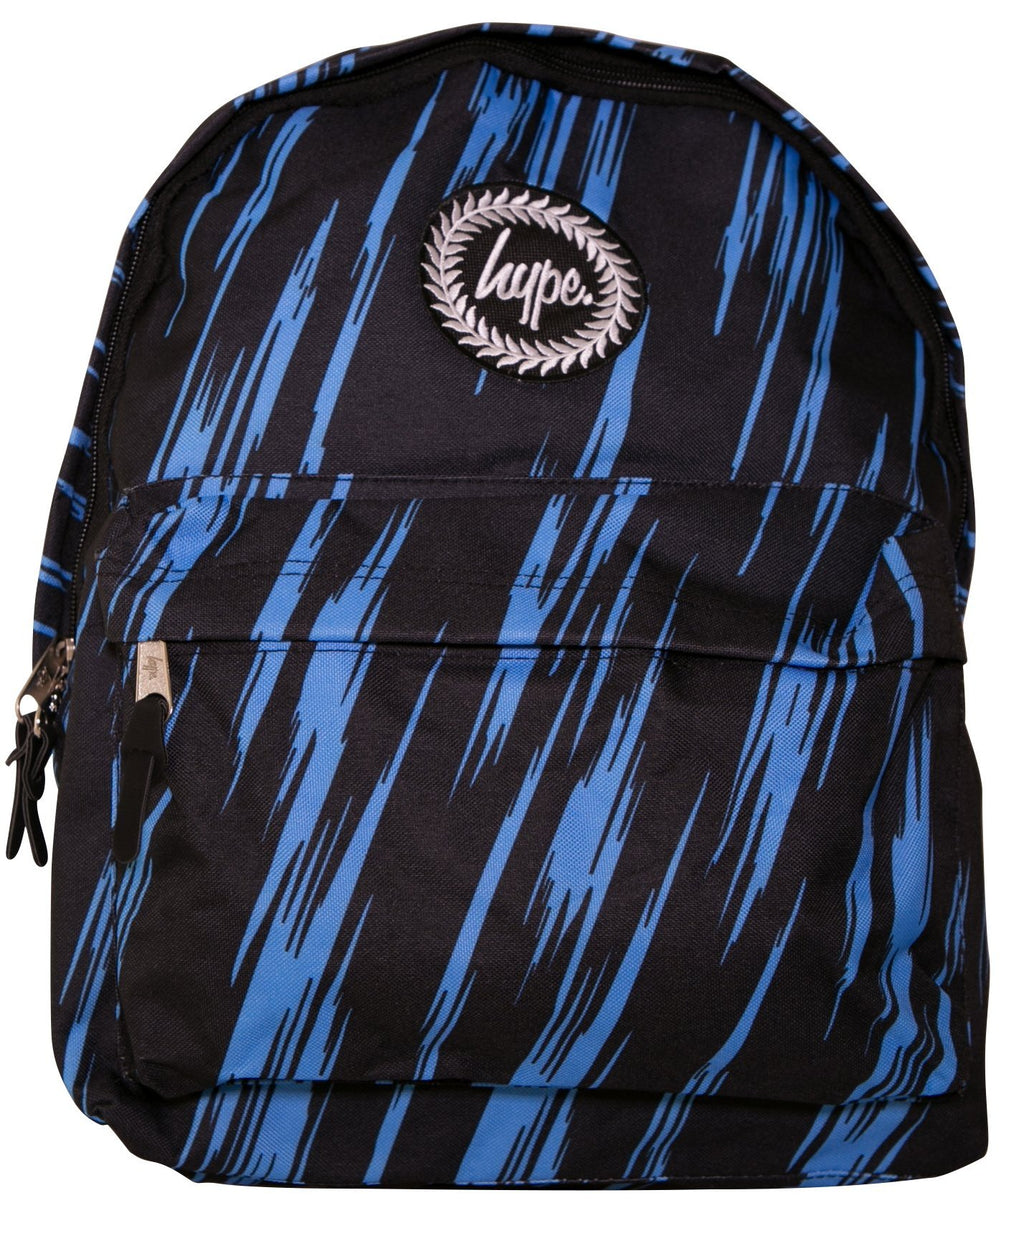 HYPE FLURO POWER BACKPACK RUCKSACK BAG - BLUE/MULTI